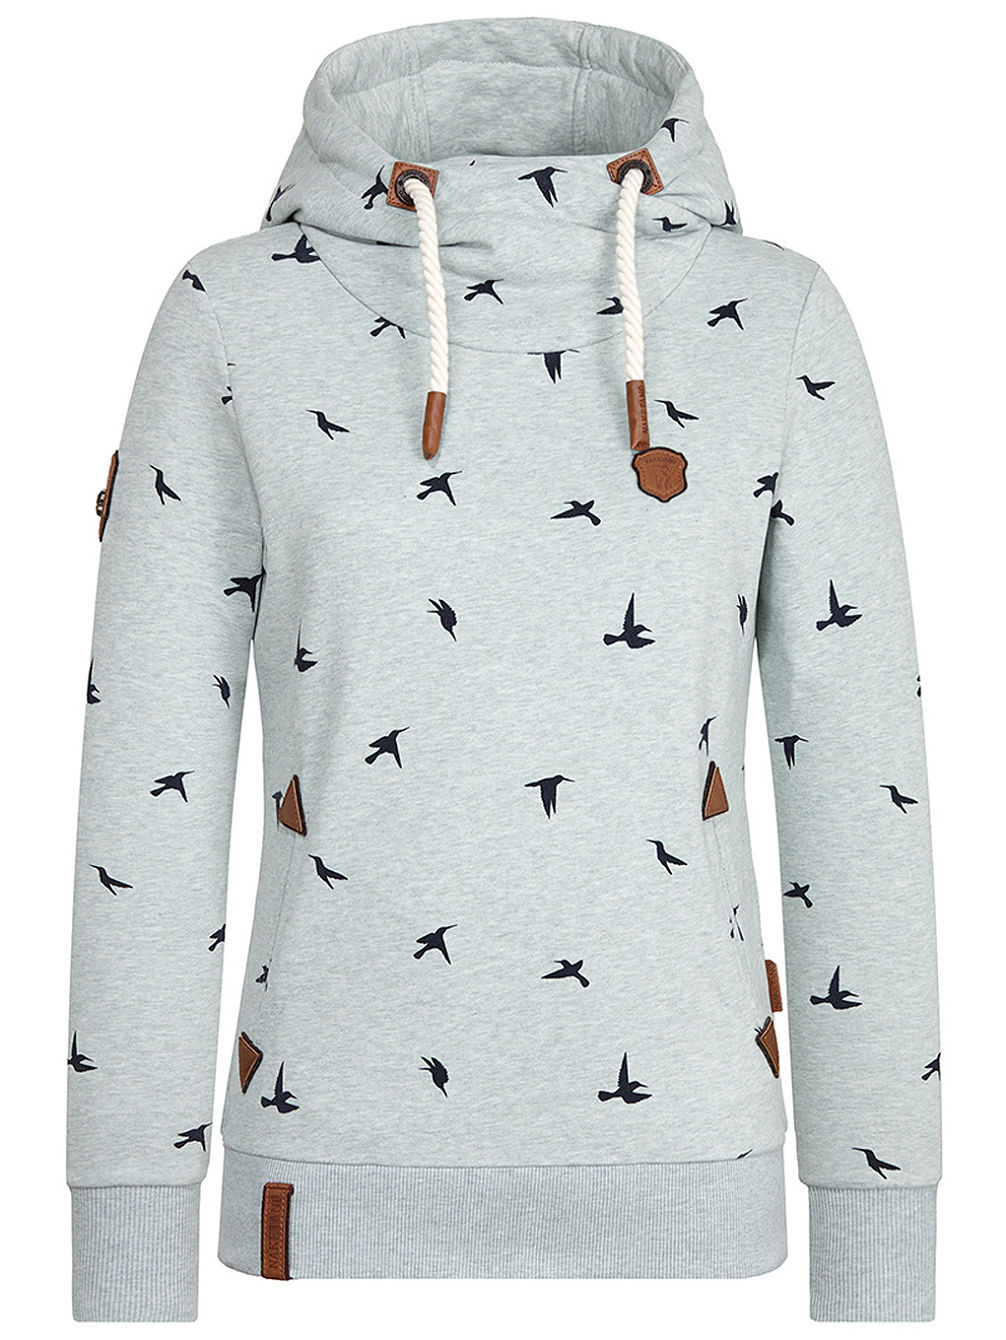 Go For The Gap Hoodie